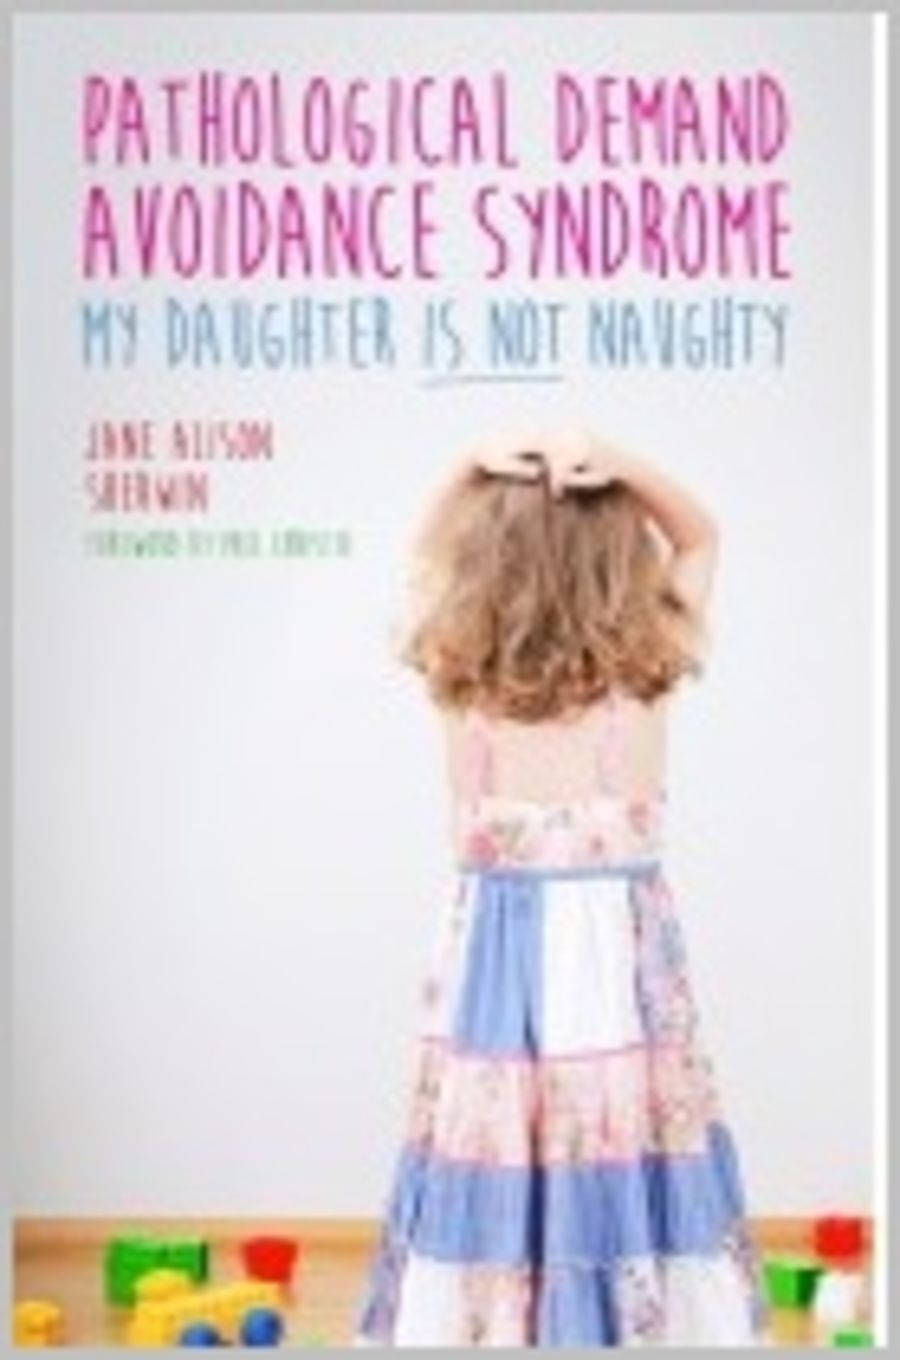 Pathological Demand Avoidance: My daughter is not naughty